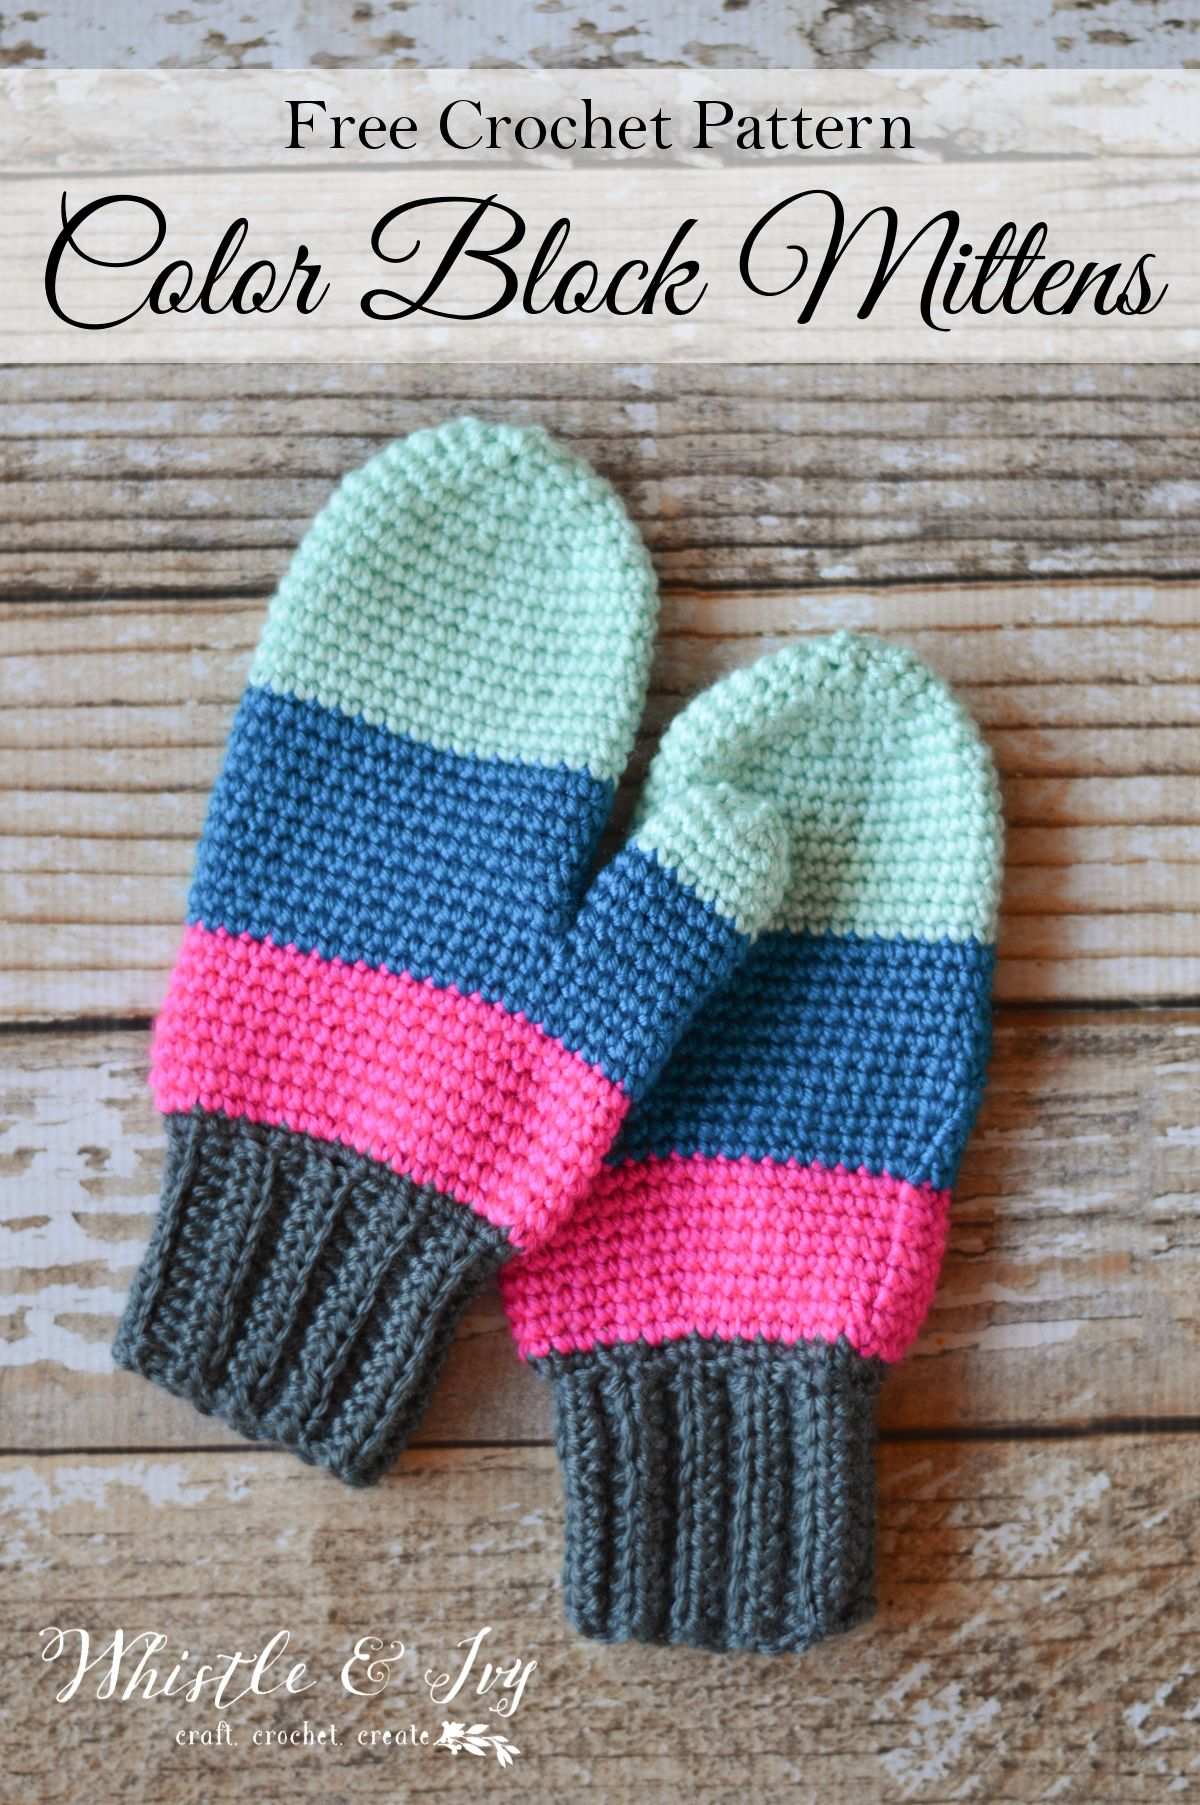 Crochet color block mittens free crochet bright colours and mittens crochet color block mittens bankloansurffo Image collections